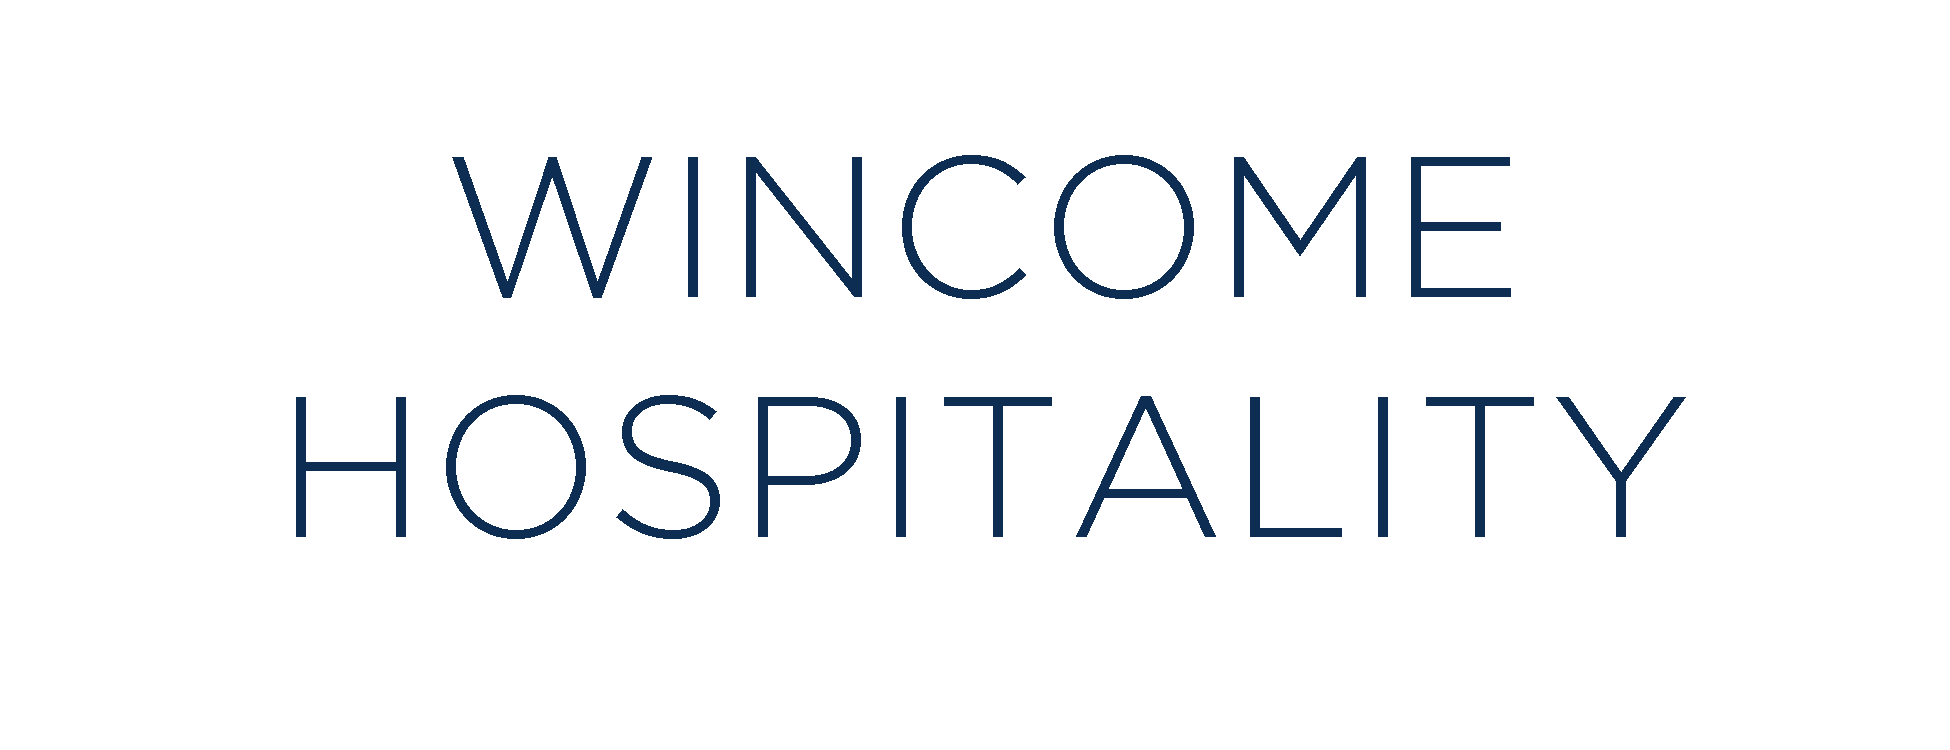 Wincome-Hospitality-Logo---Blue-Text.png